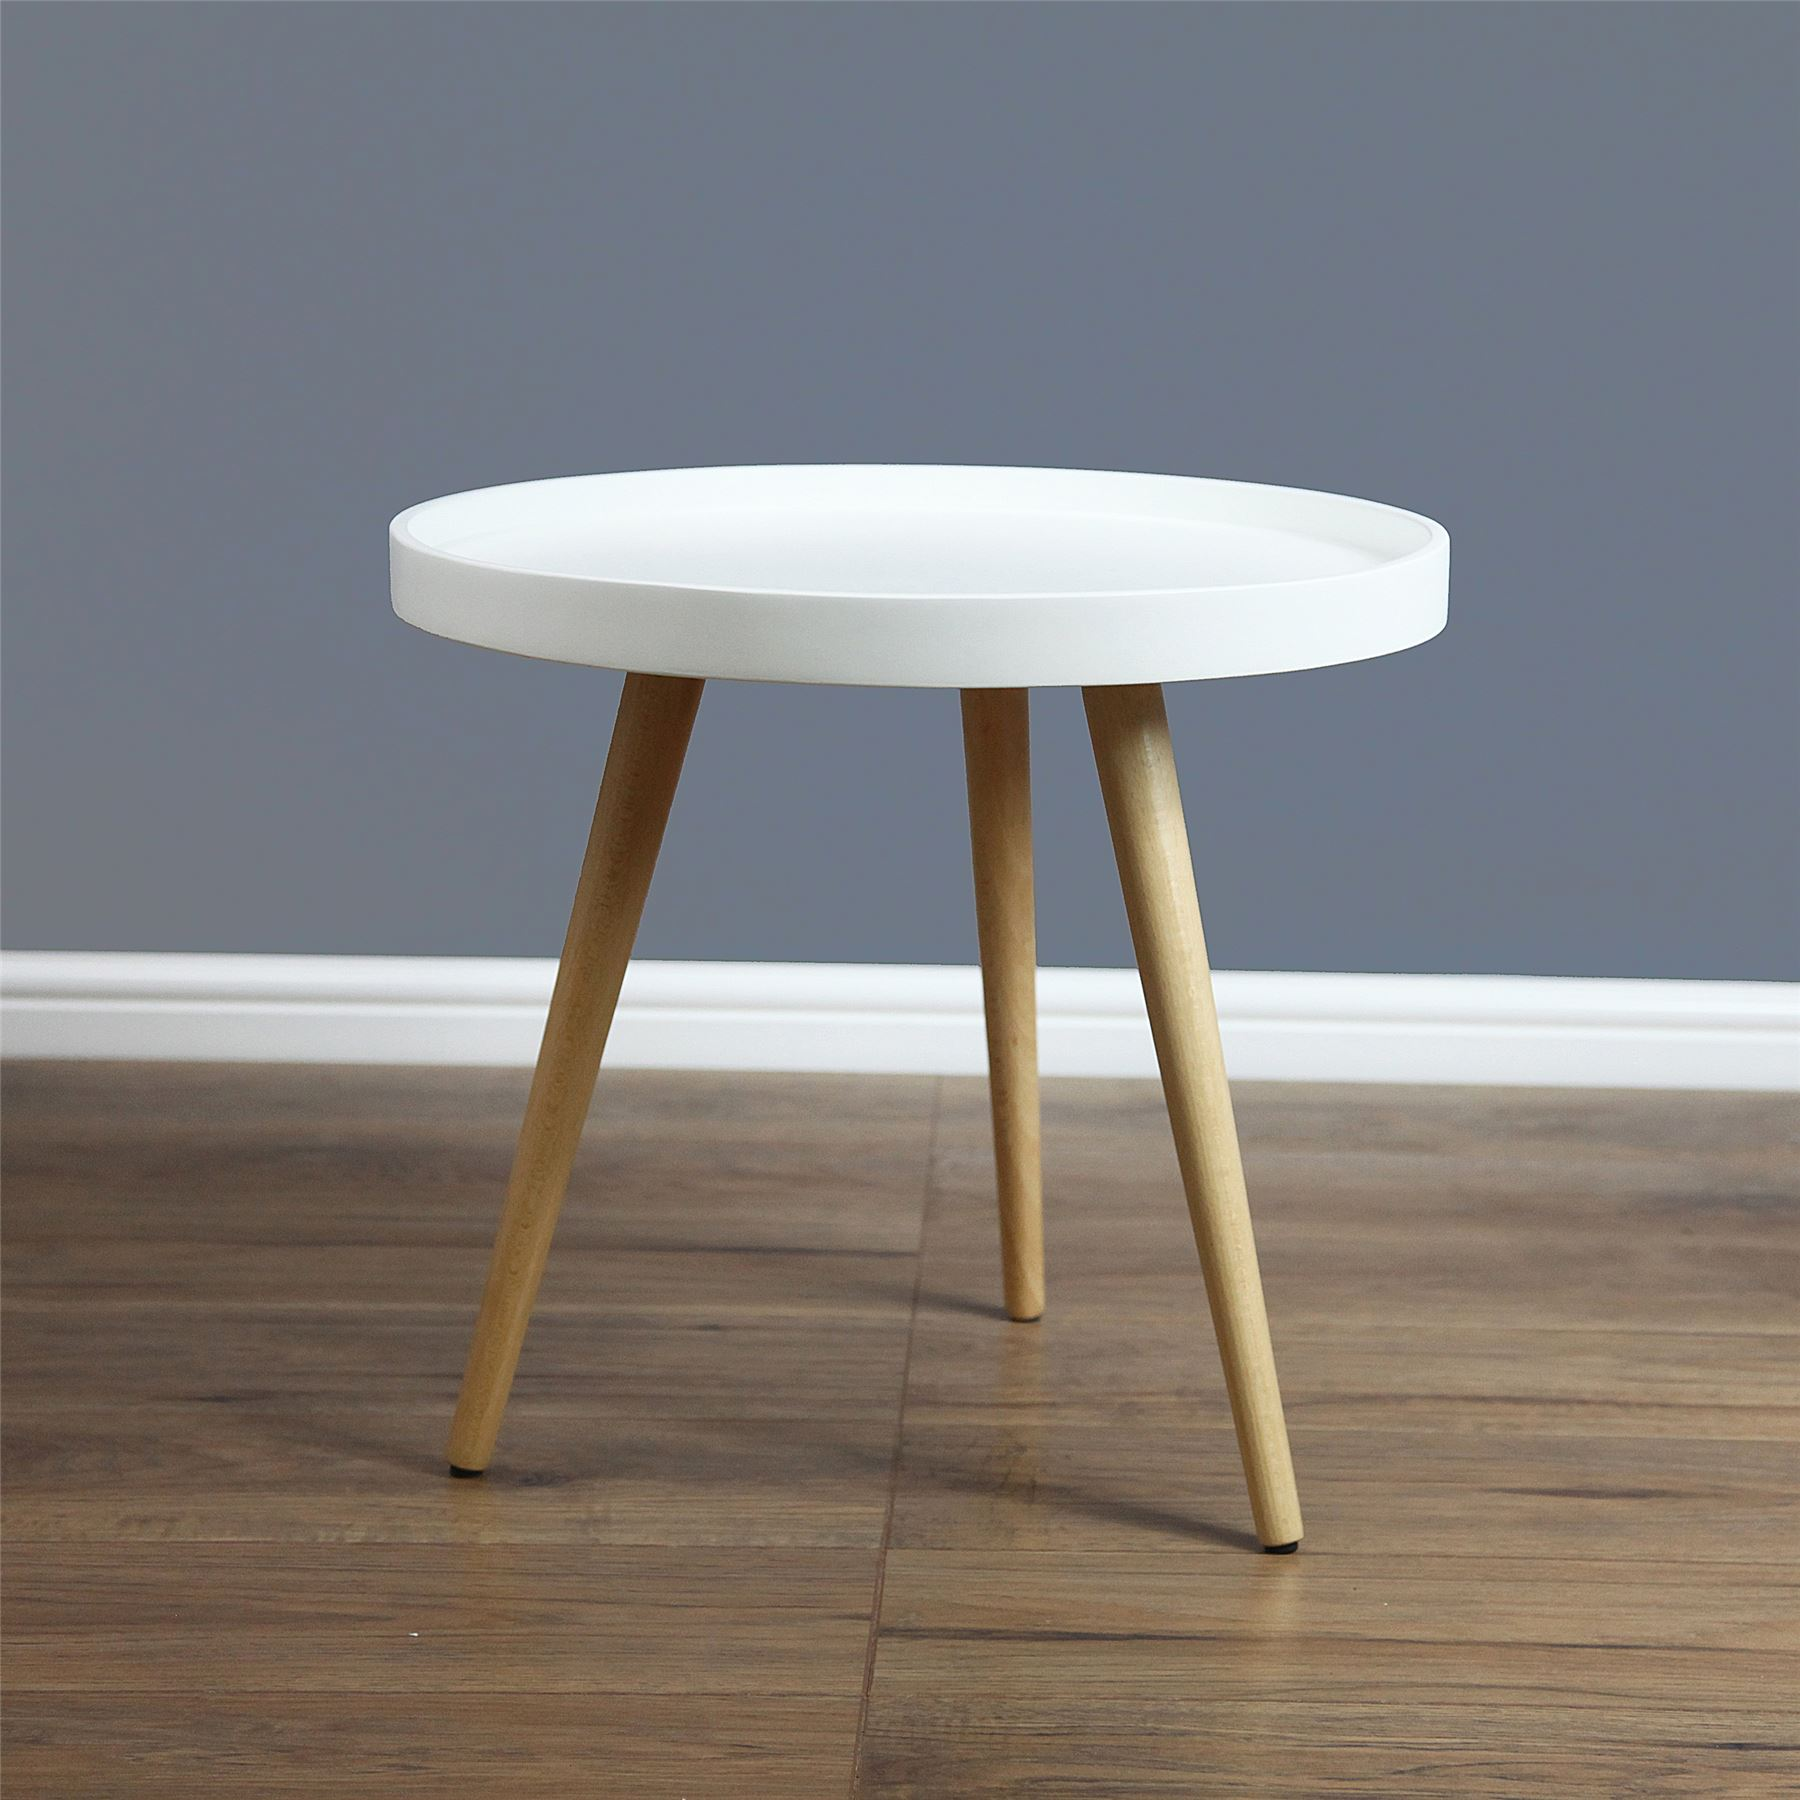 Solid Wood Curved Coffee Table: Capri Round Tray Table Coffee Table Solid Wood In 50cm